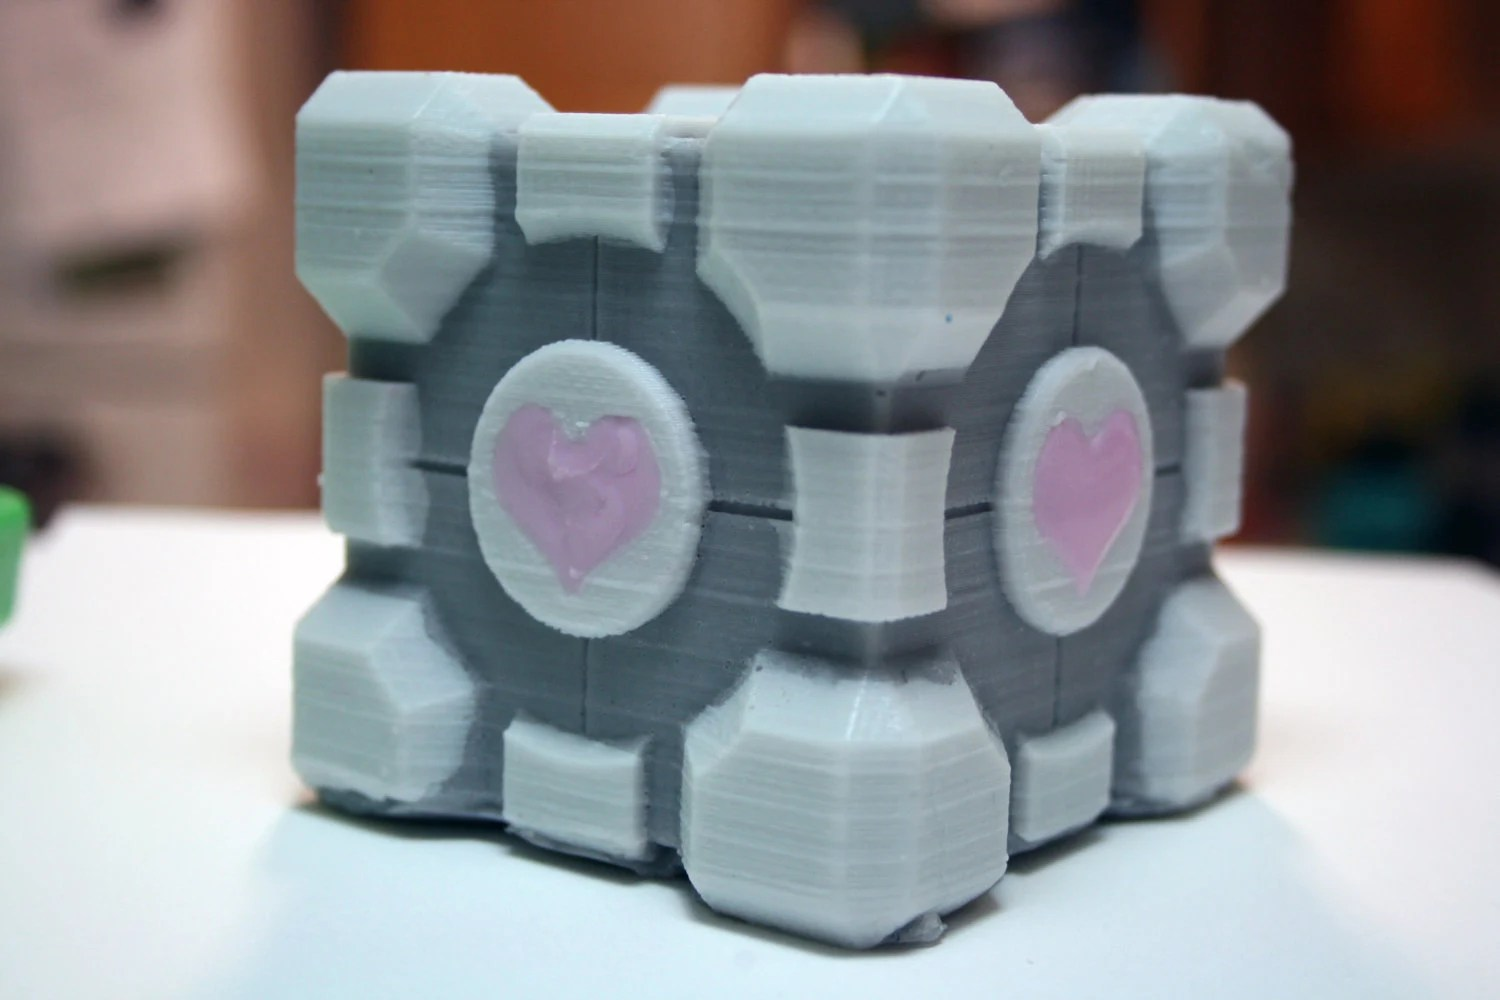 Companion Cube Soap NEW Version, Mountain Dew-Type Scent by Gamer and Geek Soap Inventor DigitalSoap